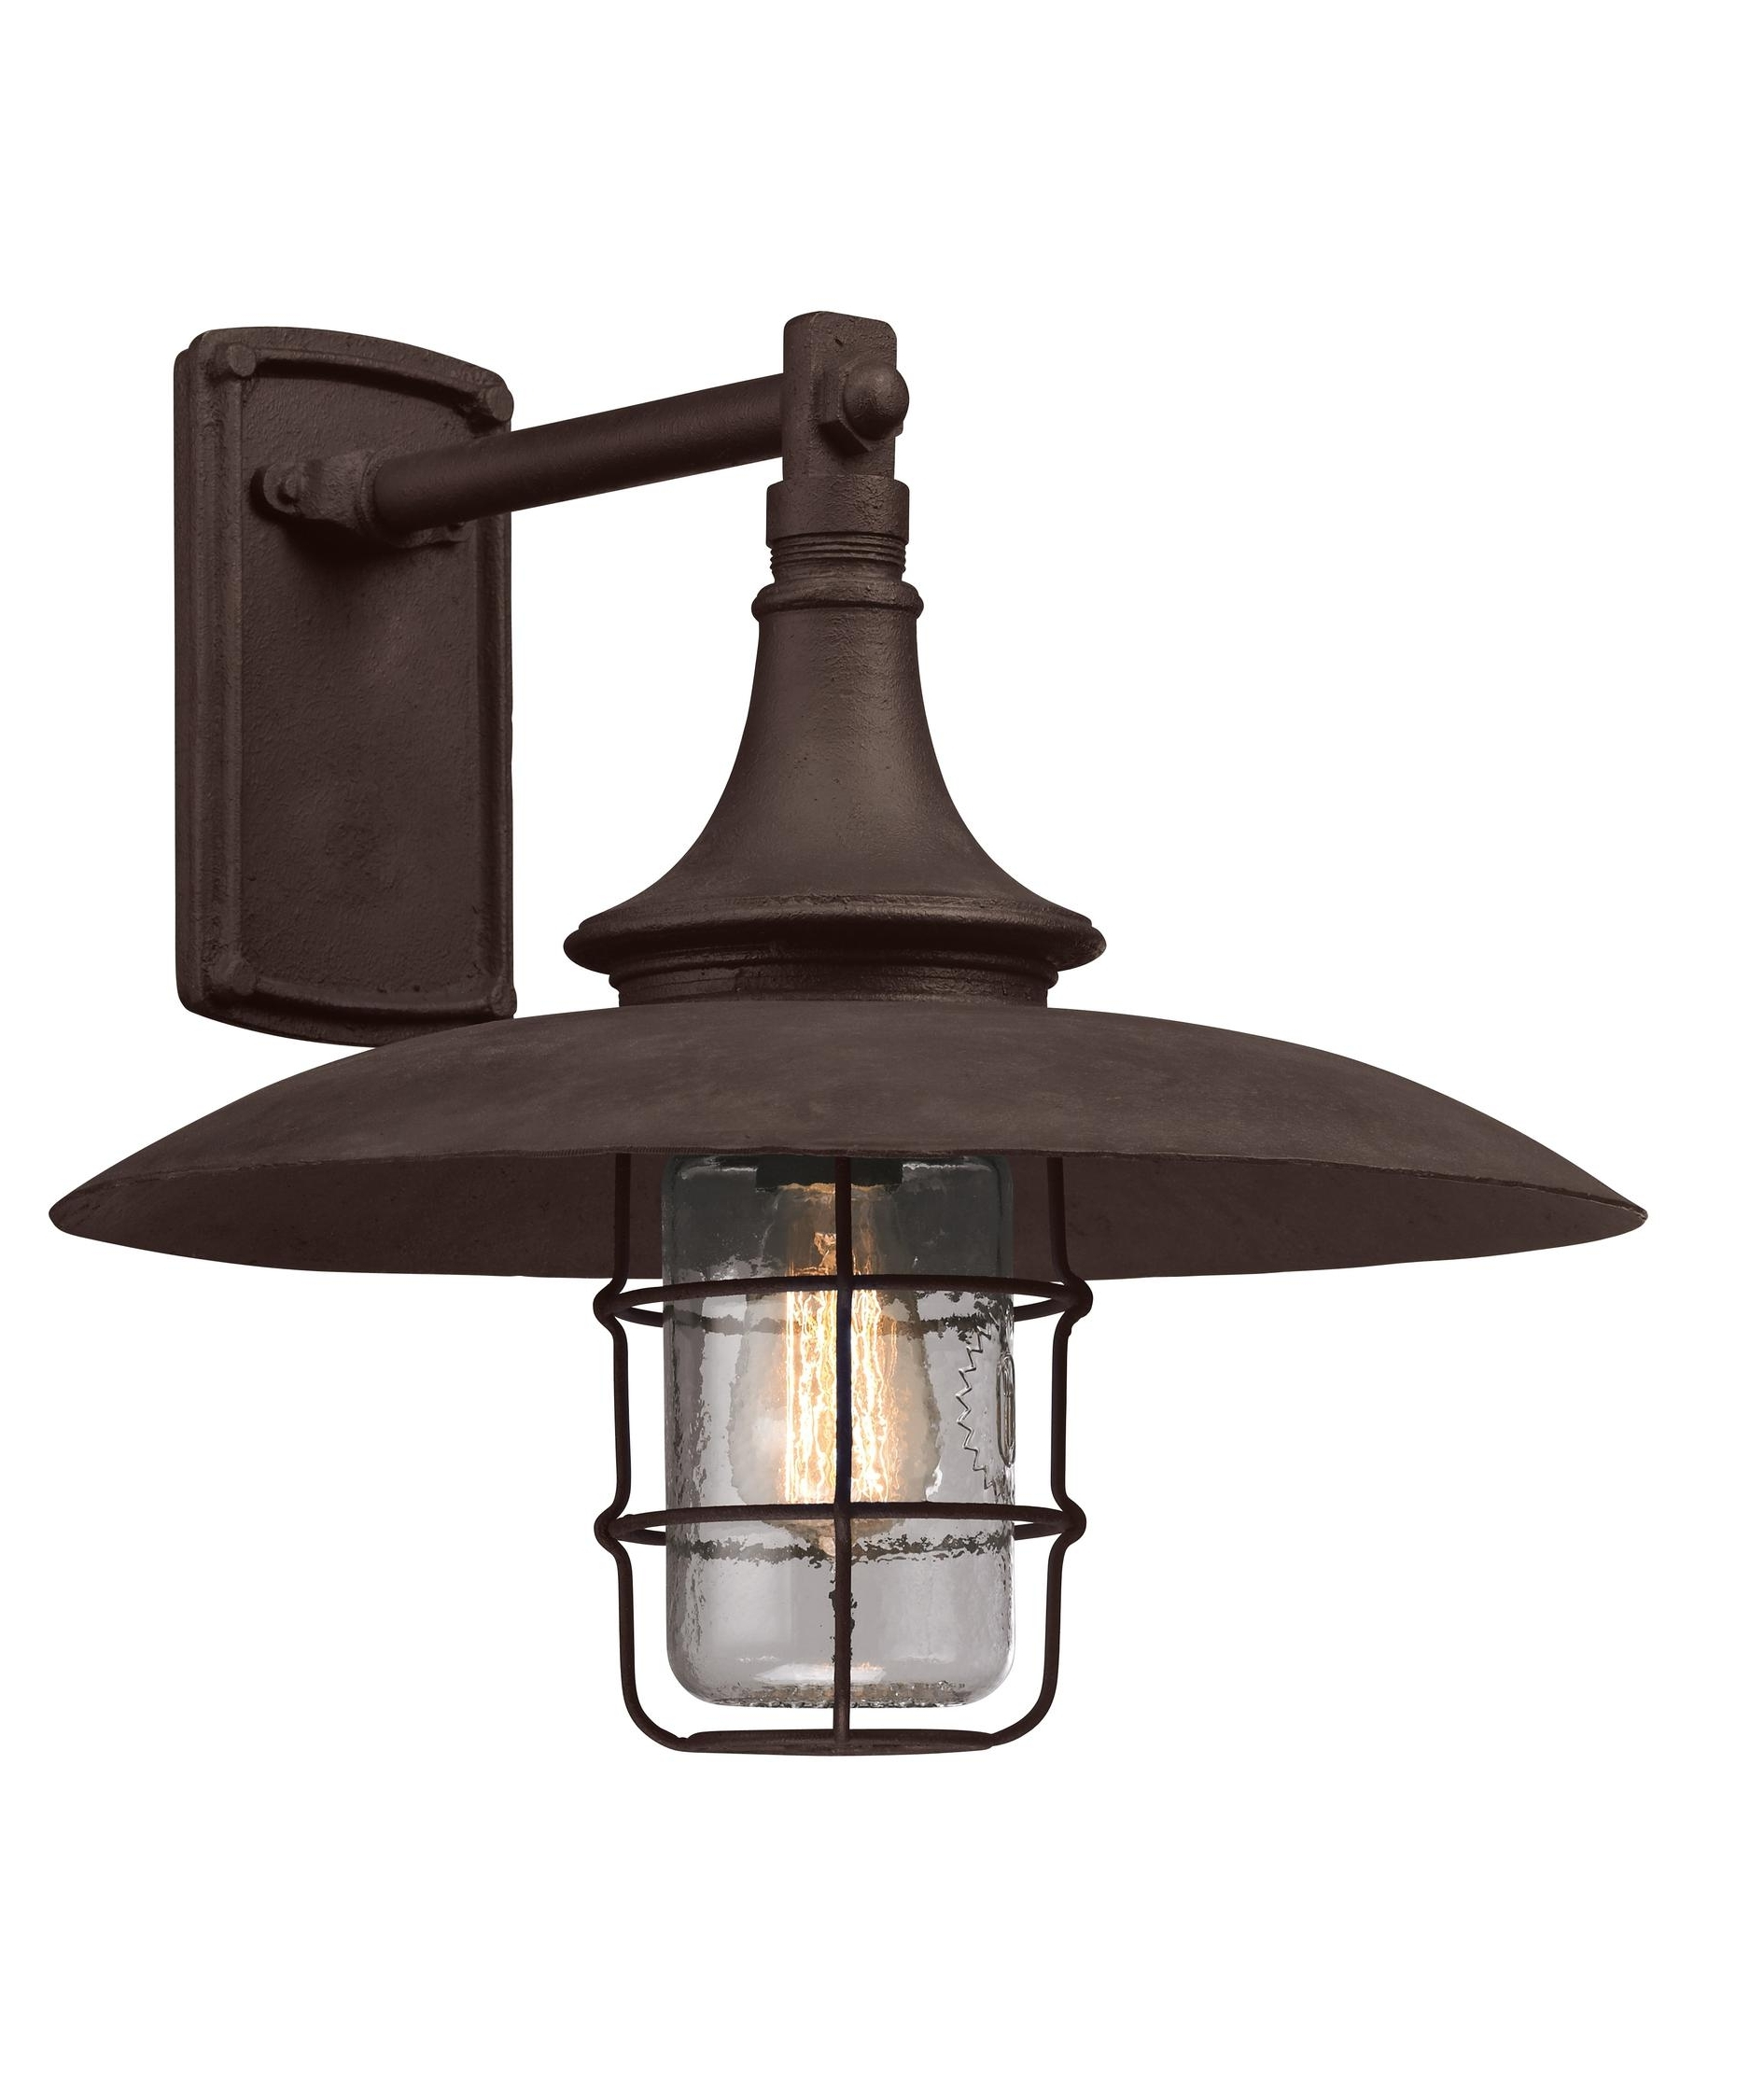 Most Popular Retro Outdoor Wall Lighting Throughout Troy Lighting B3222 Allegany 16 Inch Wide 1 Light Outdoor Wall Light (View 3 of 20)